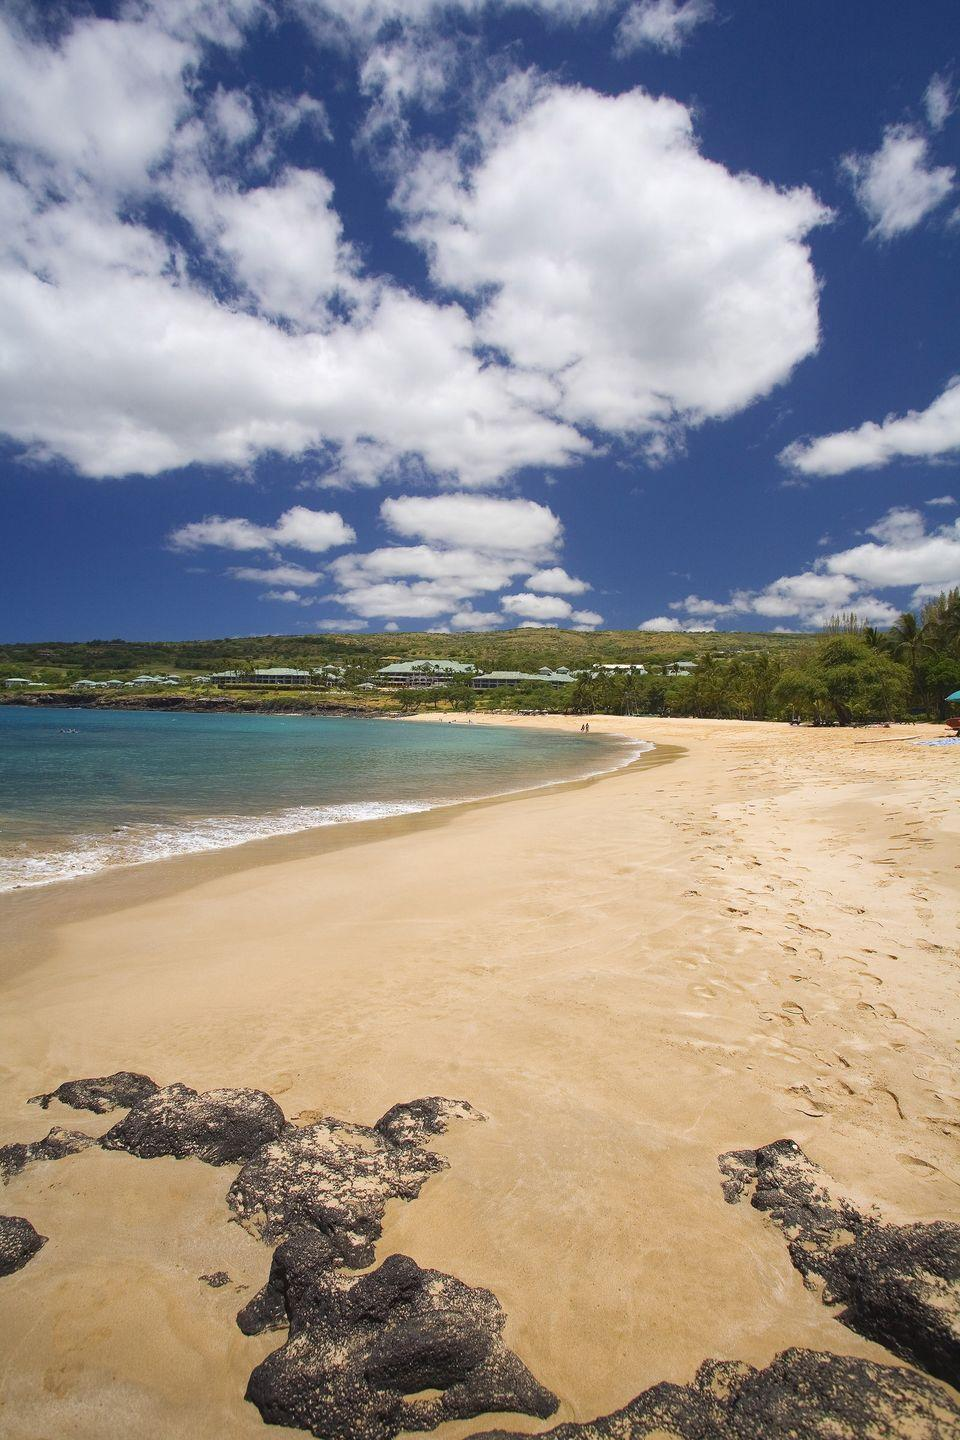 <p><strong>Population:</strong> 29</p><p>You'll find the gorgeous Maulee Bay and Hulopoe Bay just a few miles away on the island of Lanai.<br></p>